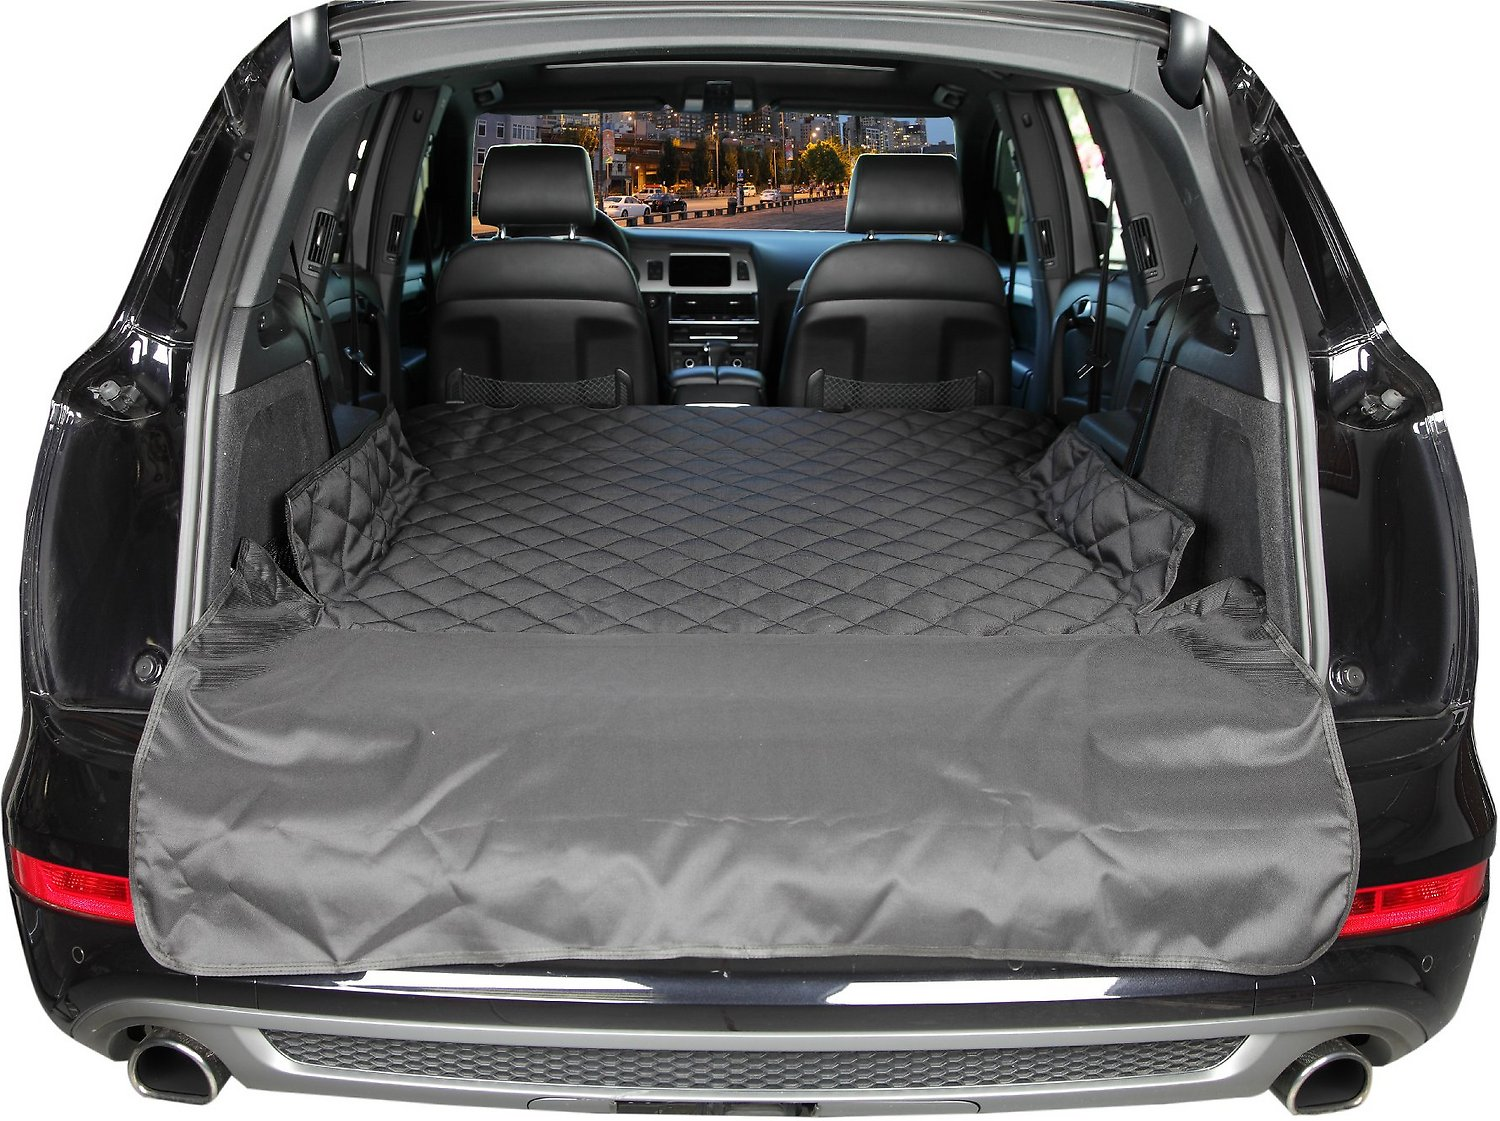 Dog Cover For Car >> 4Knines SUV Cargo Cover, Black, Large - Chewy.com